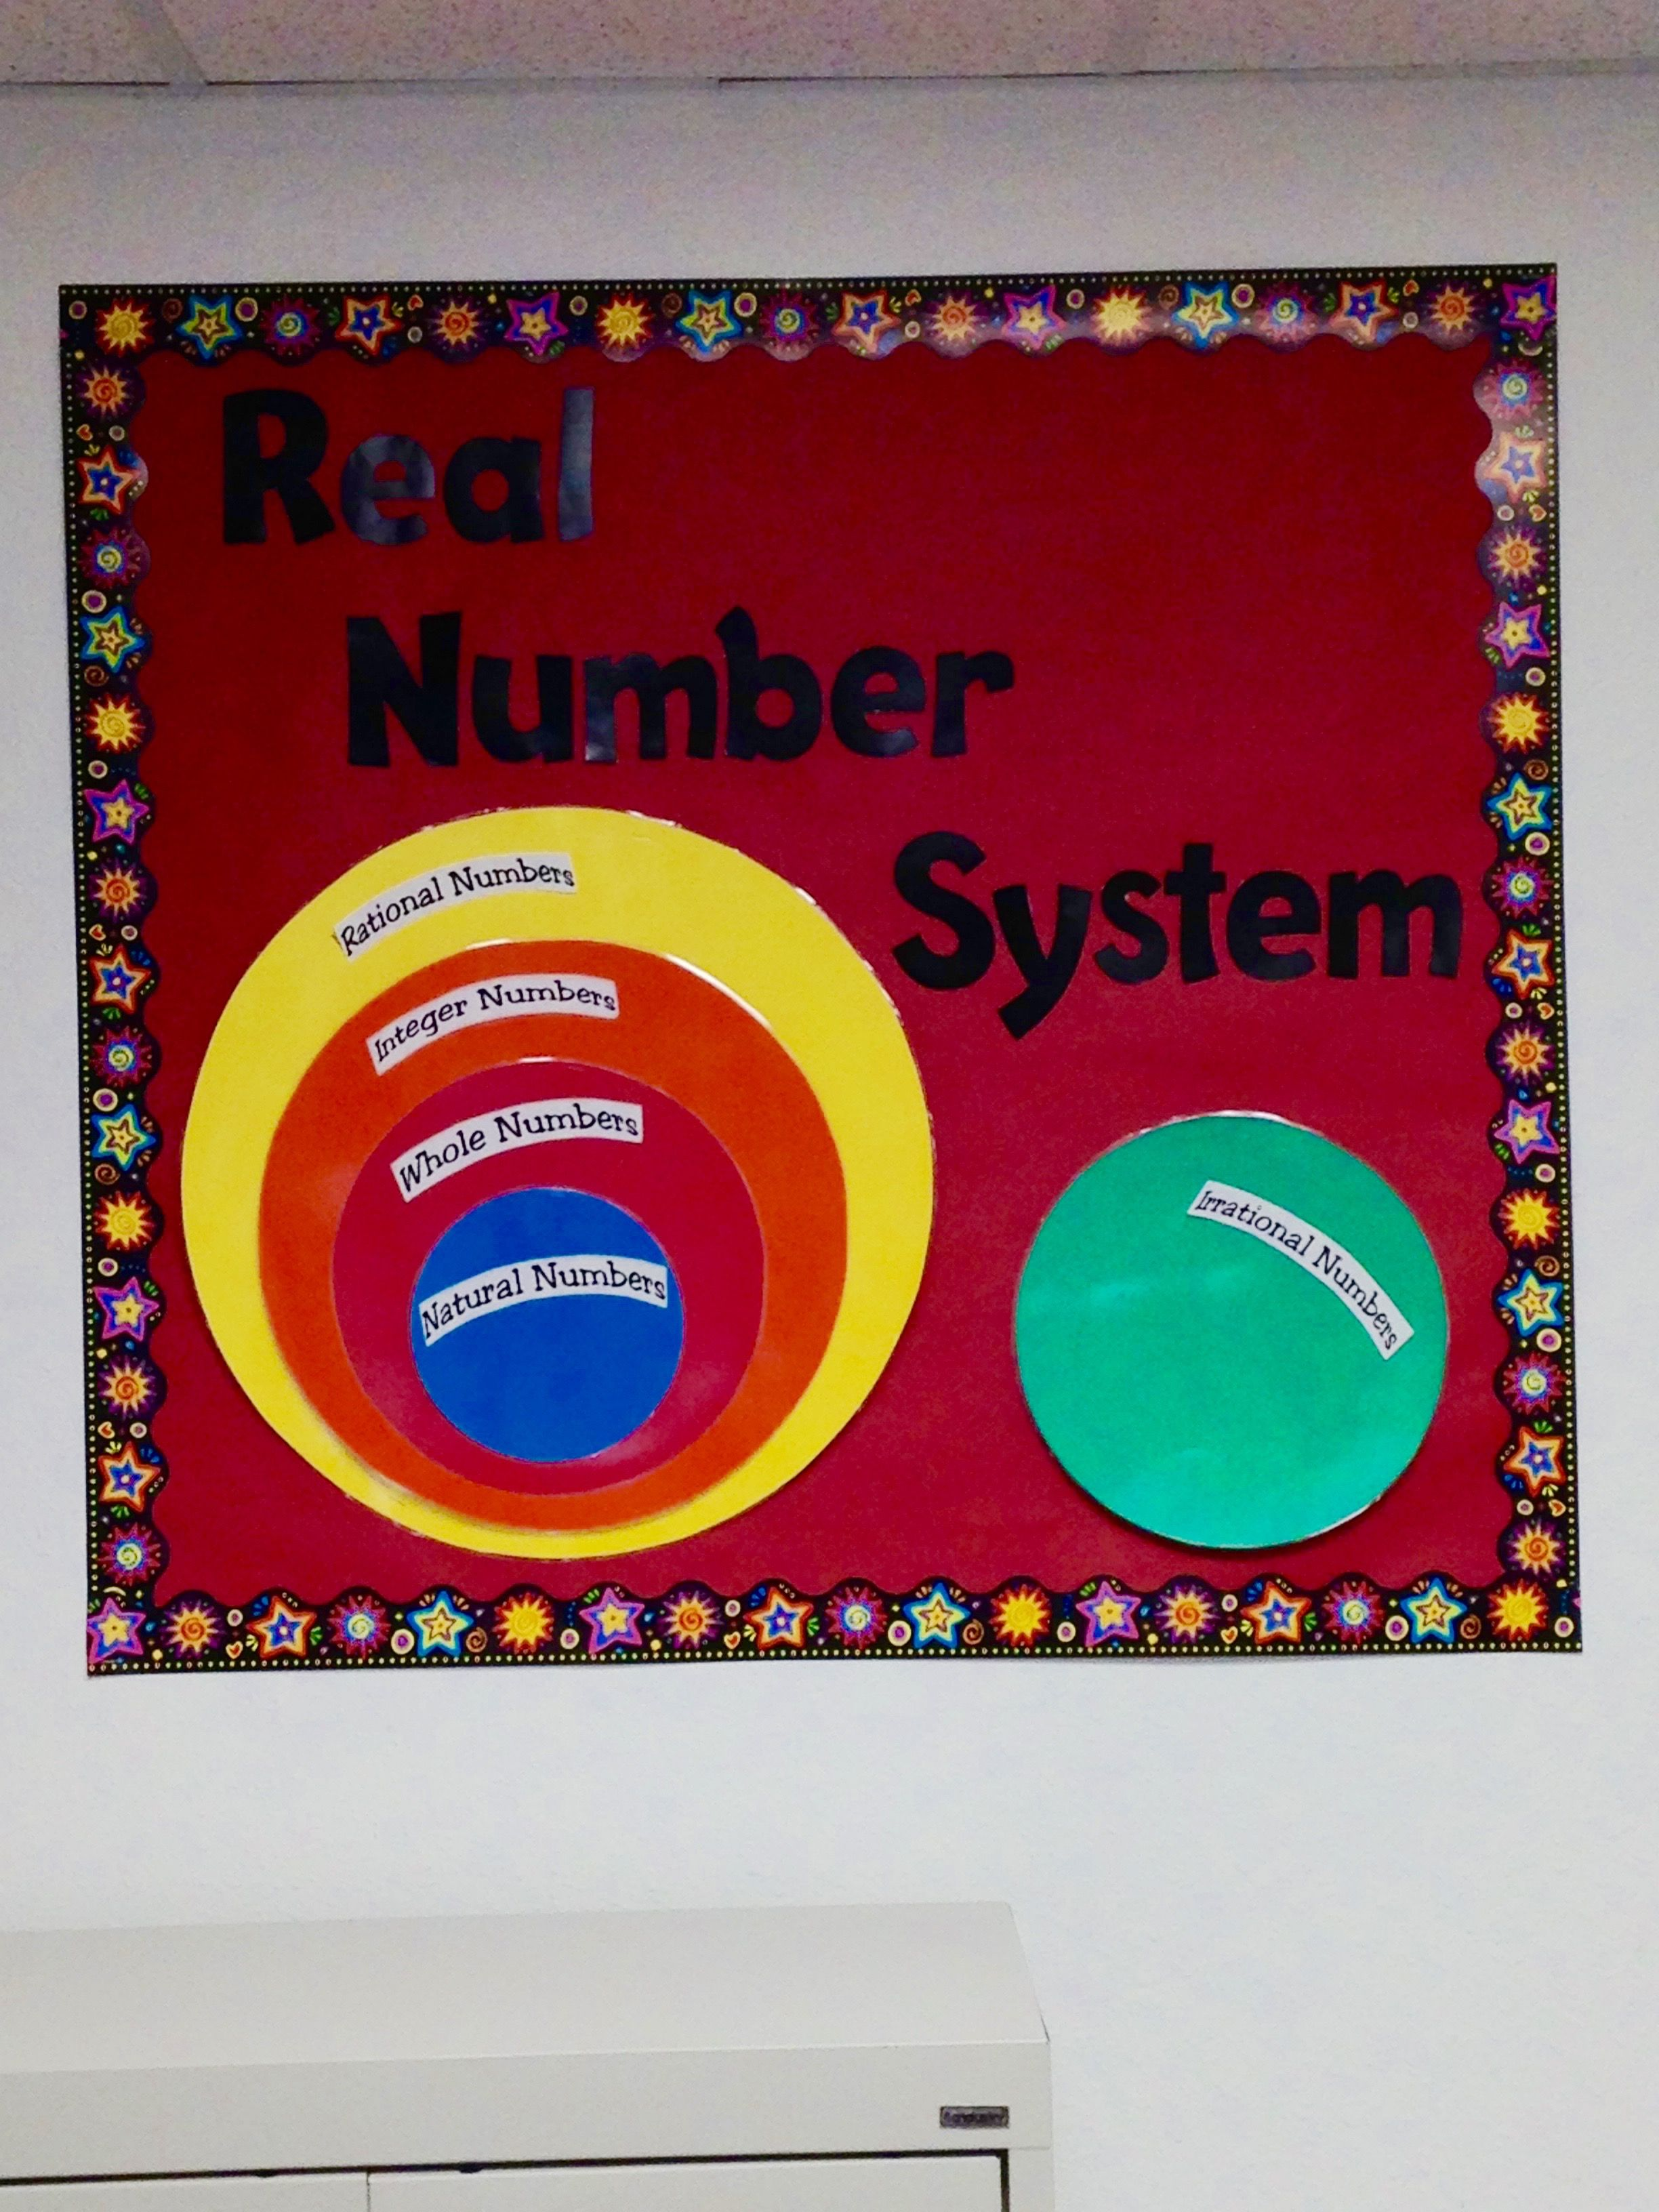 Real number system venn diagram bulletin board ideas pinterest real number system venn diagram ccuart Choice Image